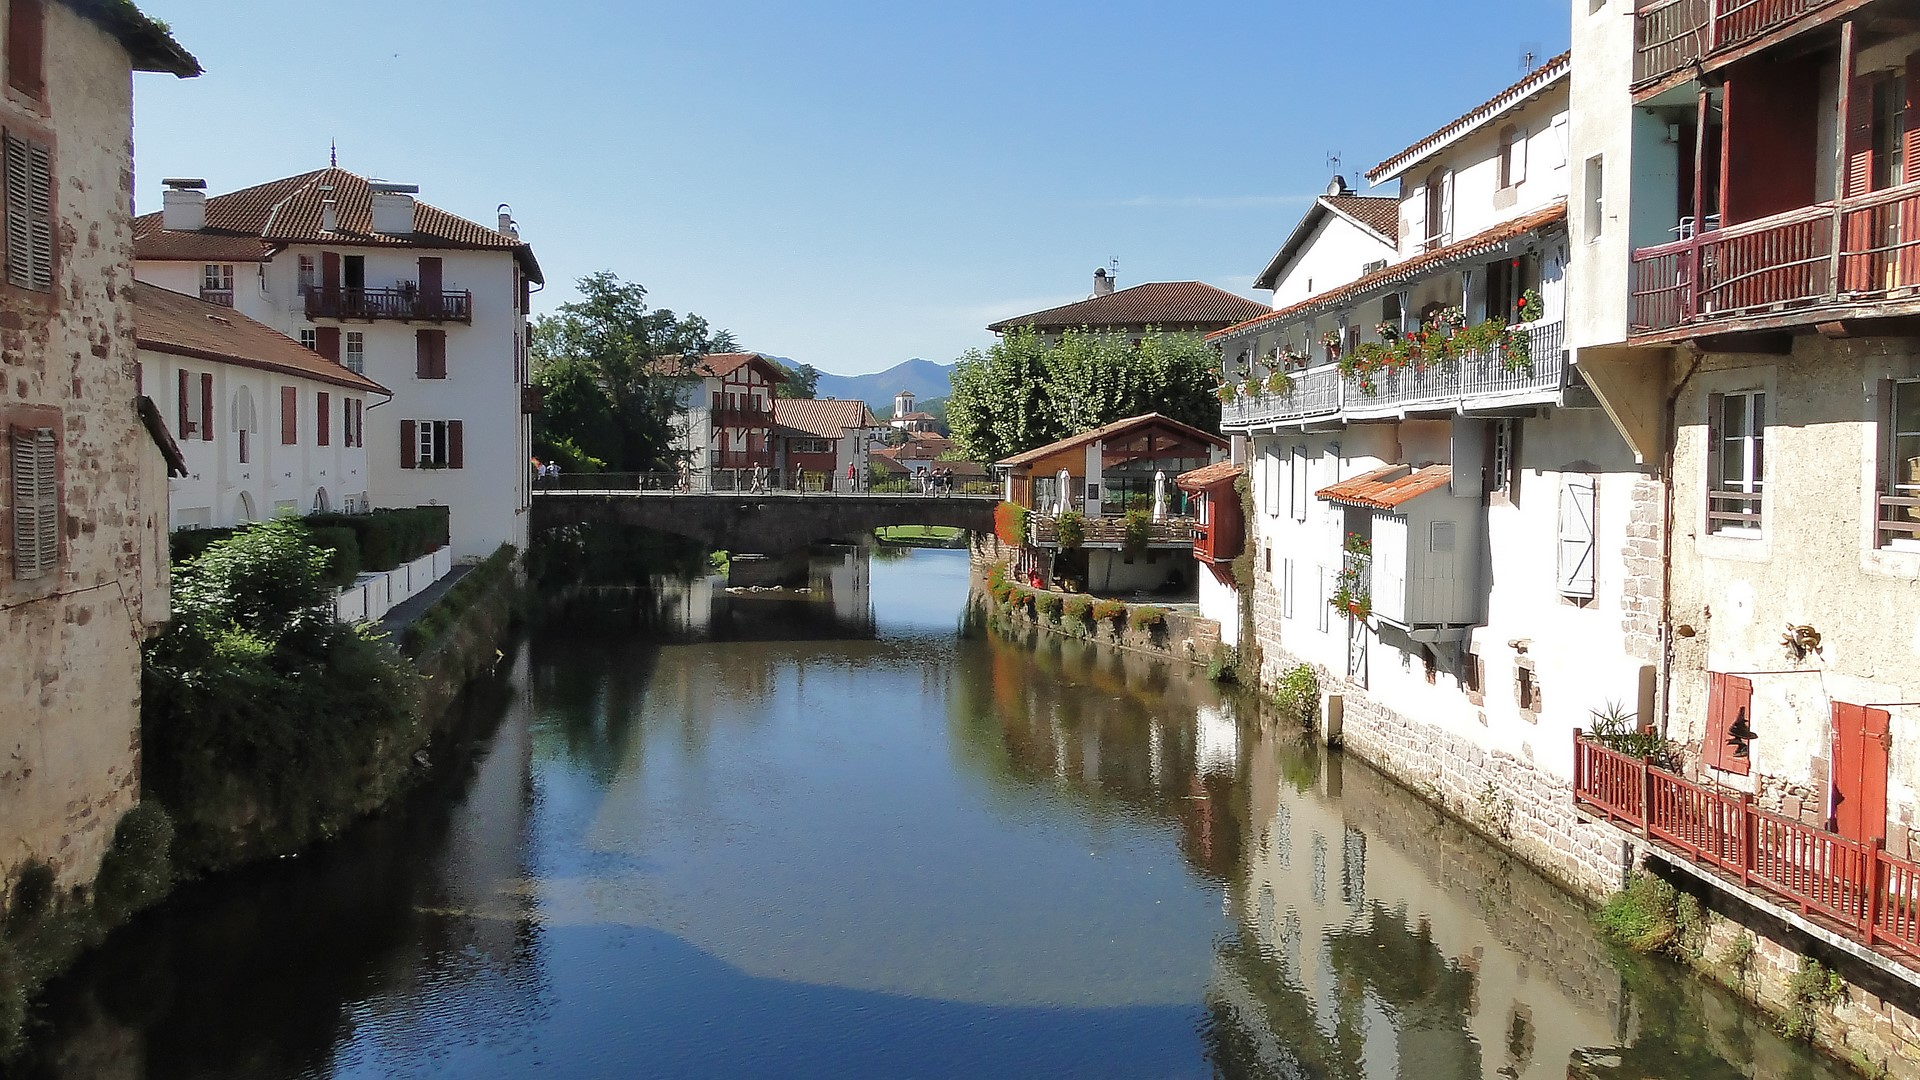 Saint jean pied de port au pays basque - Office de tourisme de saint jean pied de port ...